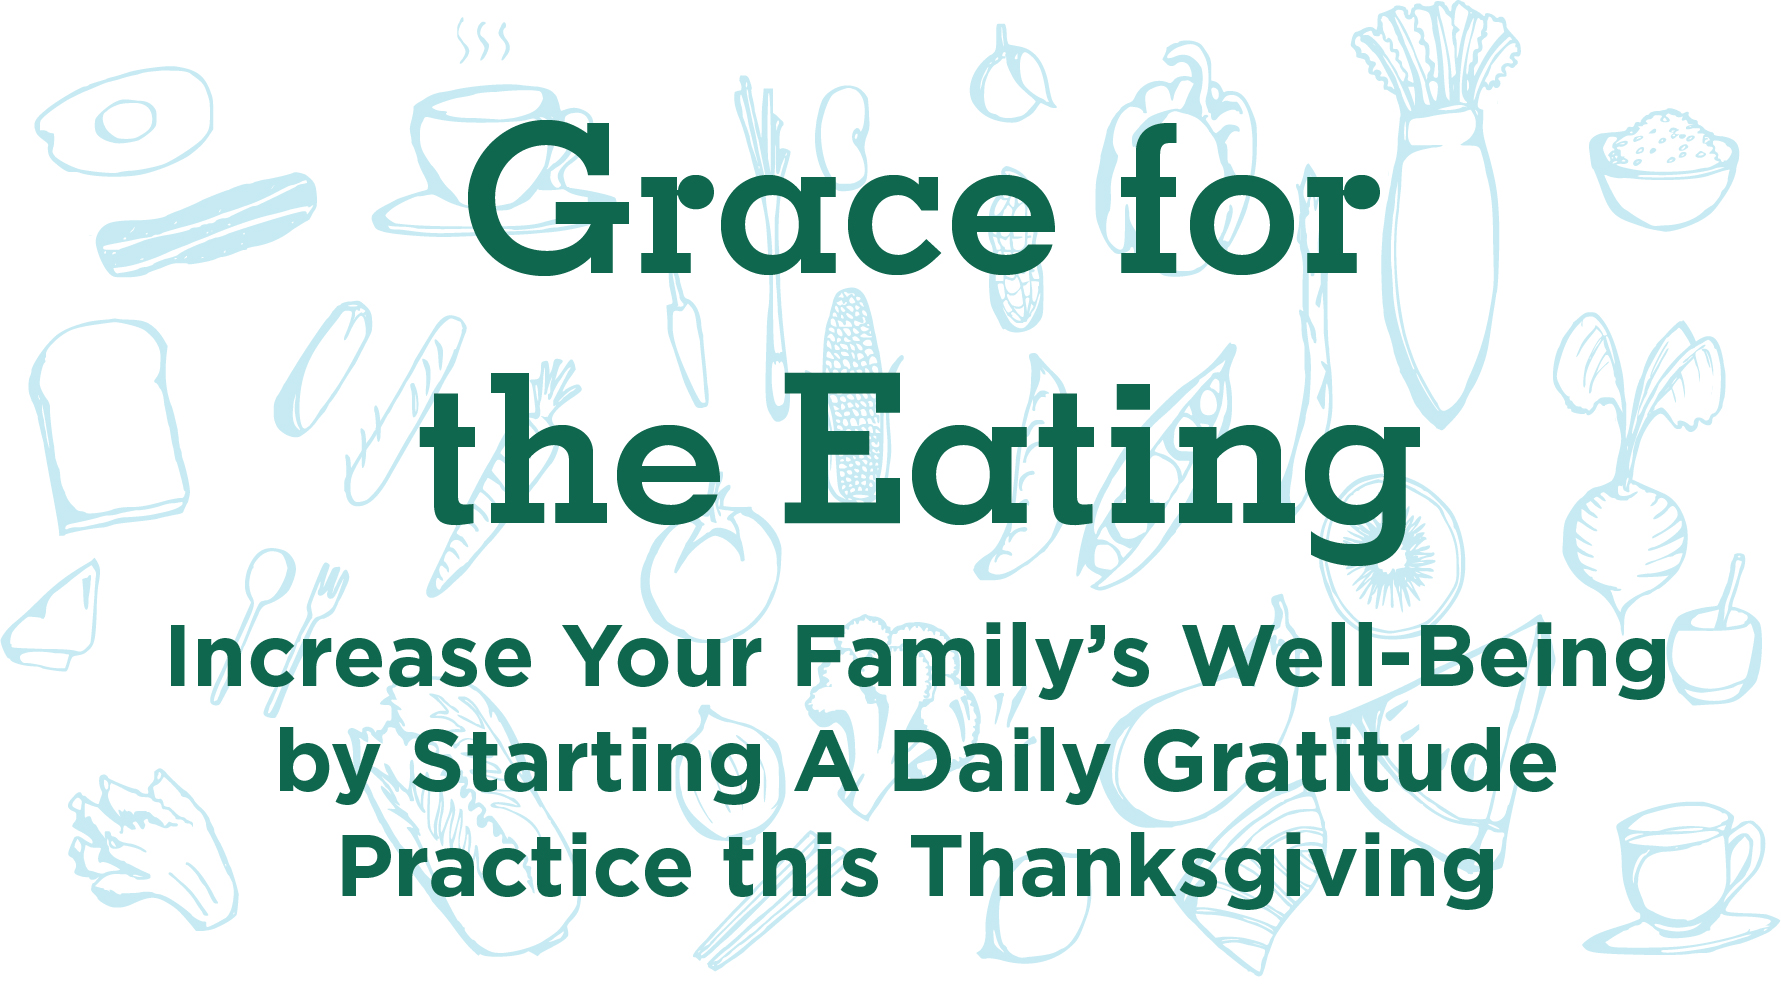 Grace for the Eating: Increase Your Family's Well-Being by Starting A Daily Gratitude Practice this Thanksgiving